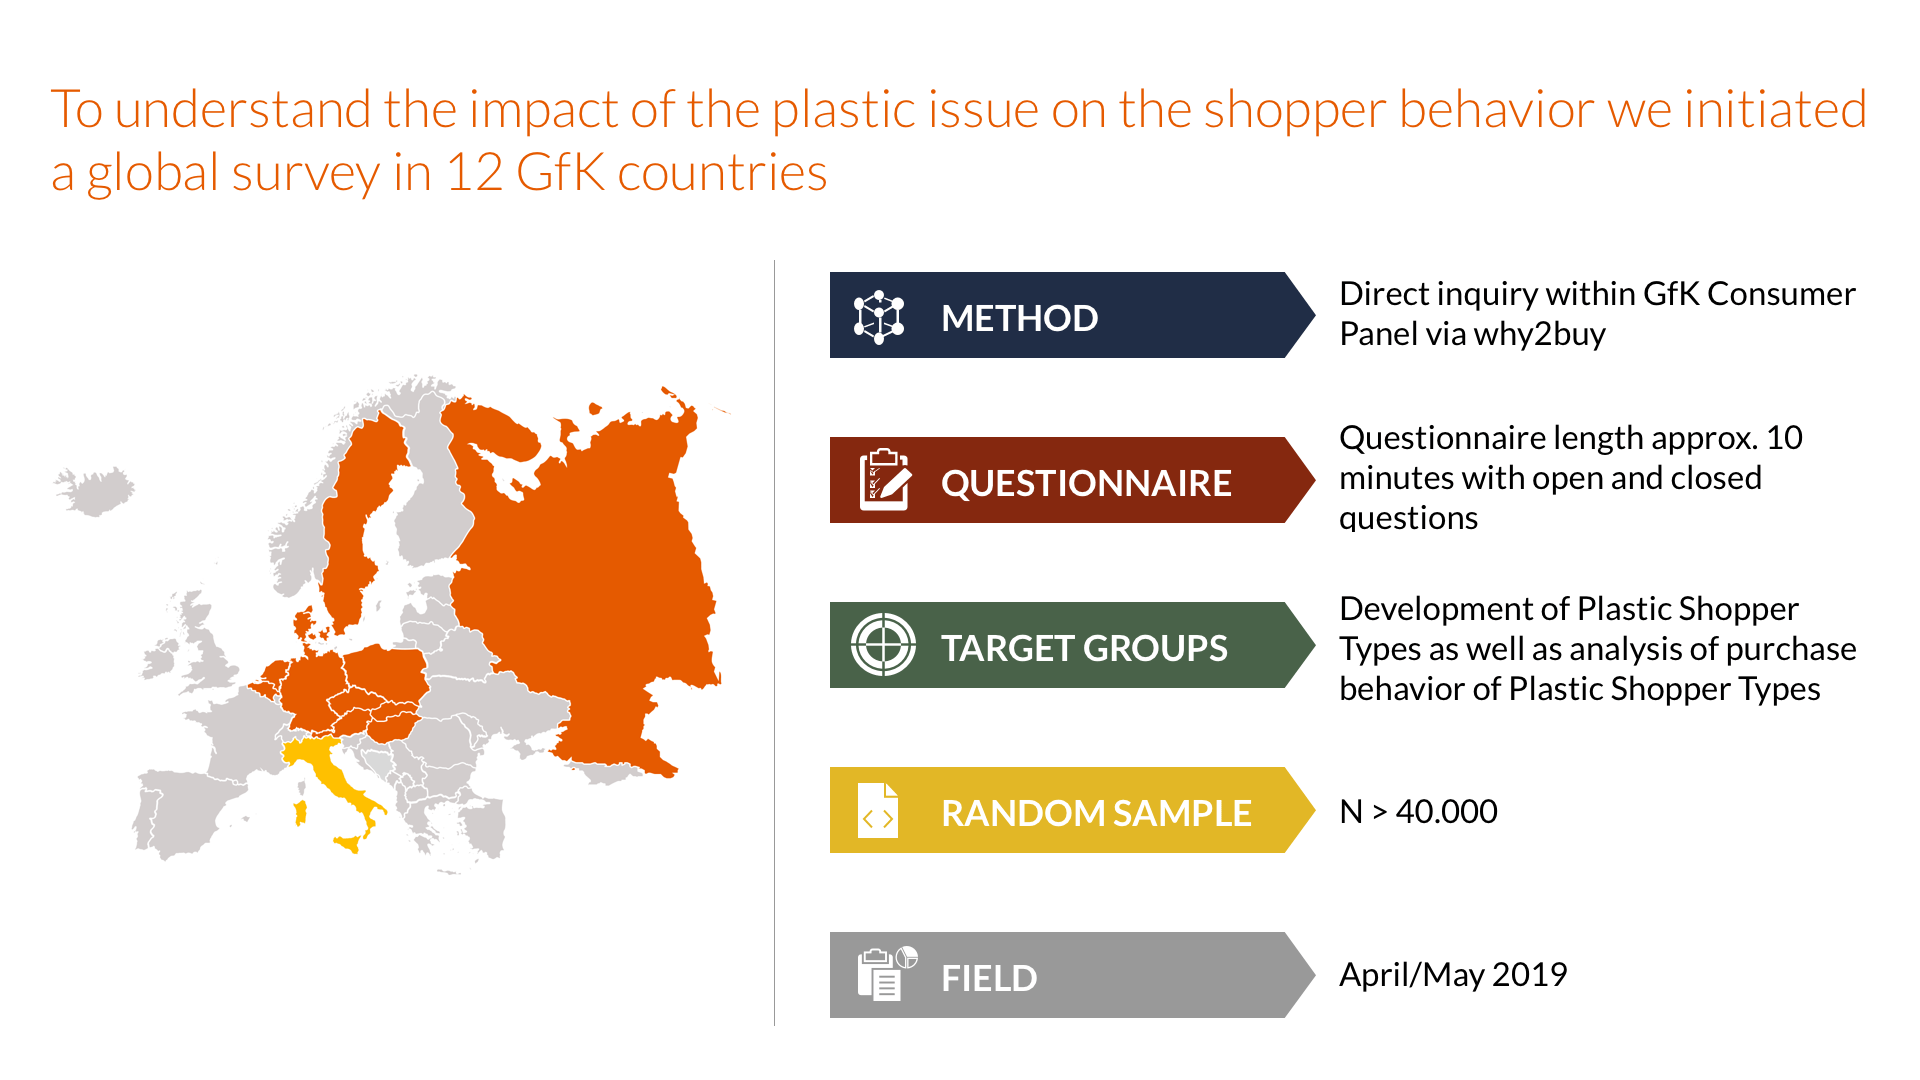 The impact of the plastic issue on the shopper